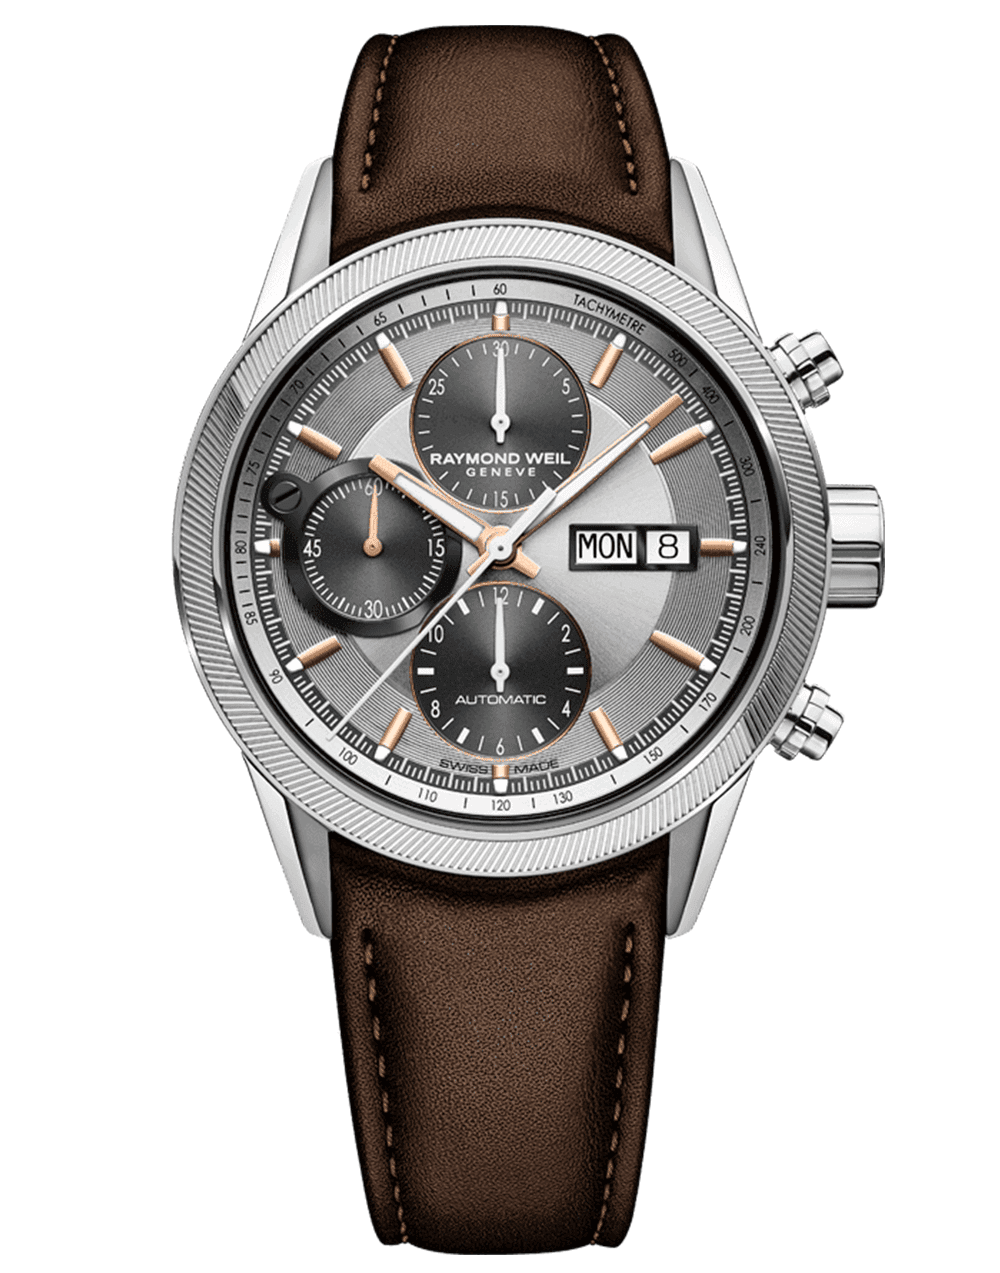 RAYMOND WEIL Automatic Chronograph Freelancer Luxury Swiss Watch